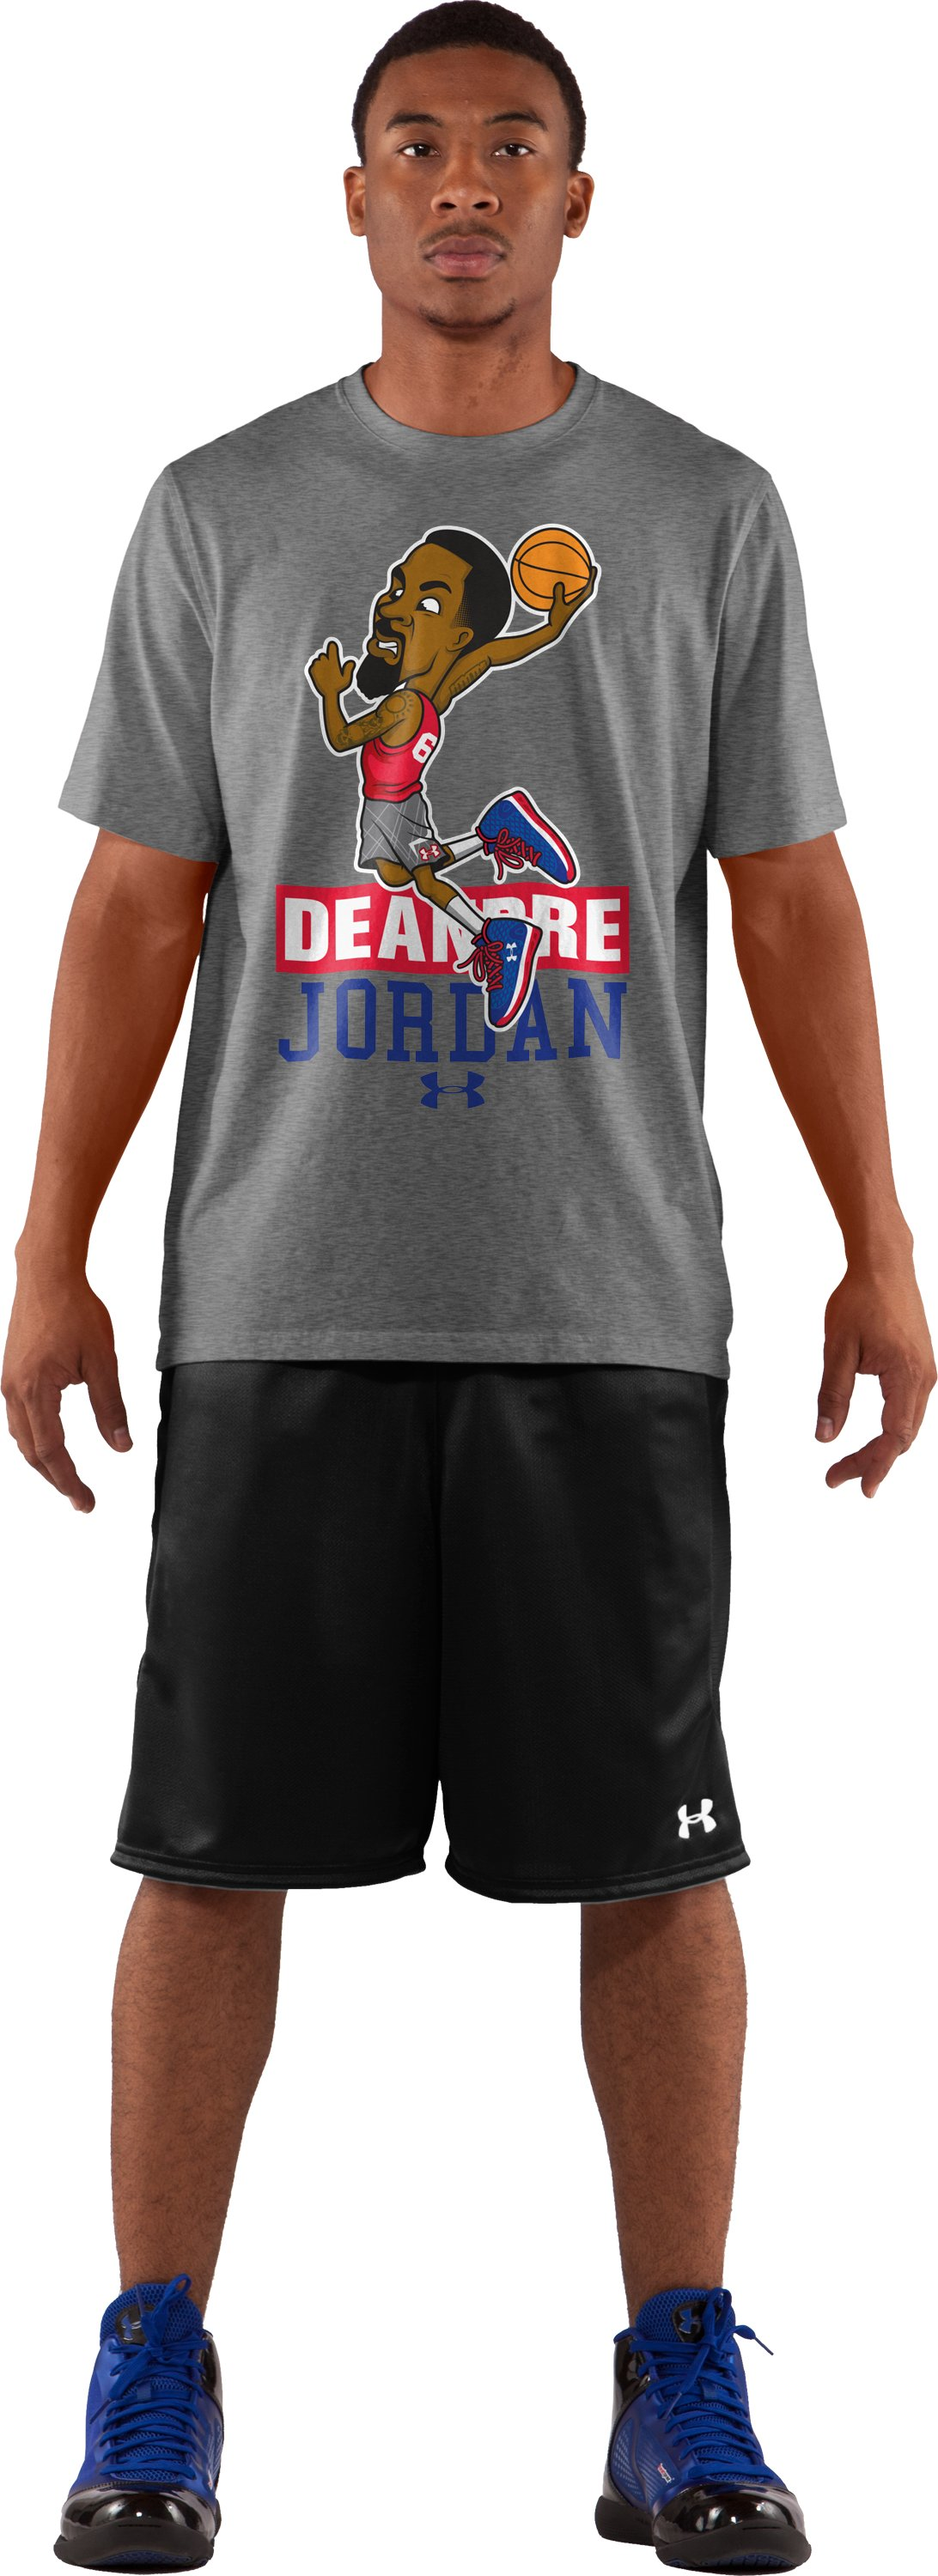 Men's UA DeAndre Jordan T-Shirt, True Gray Heather, Front